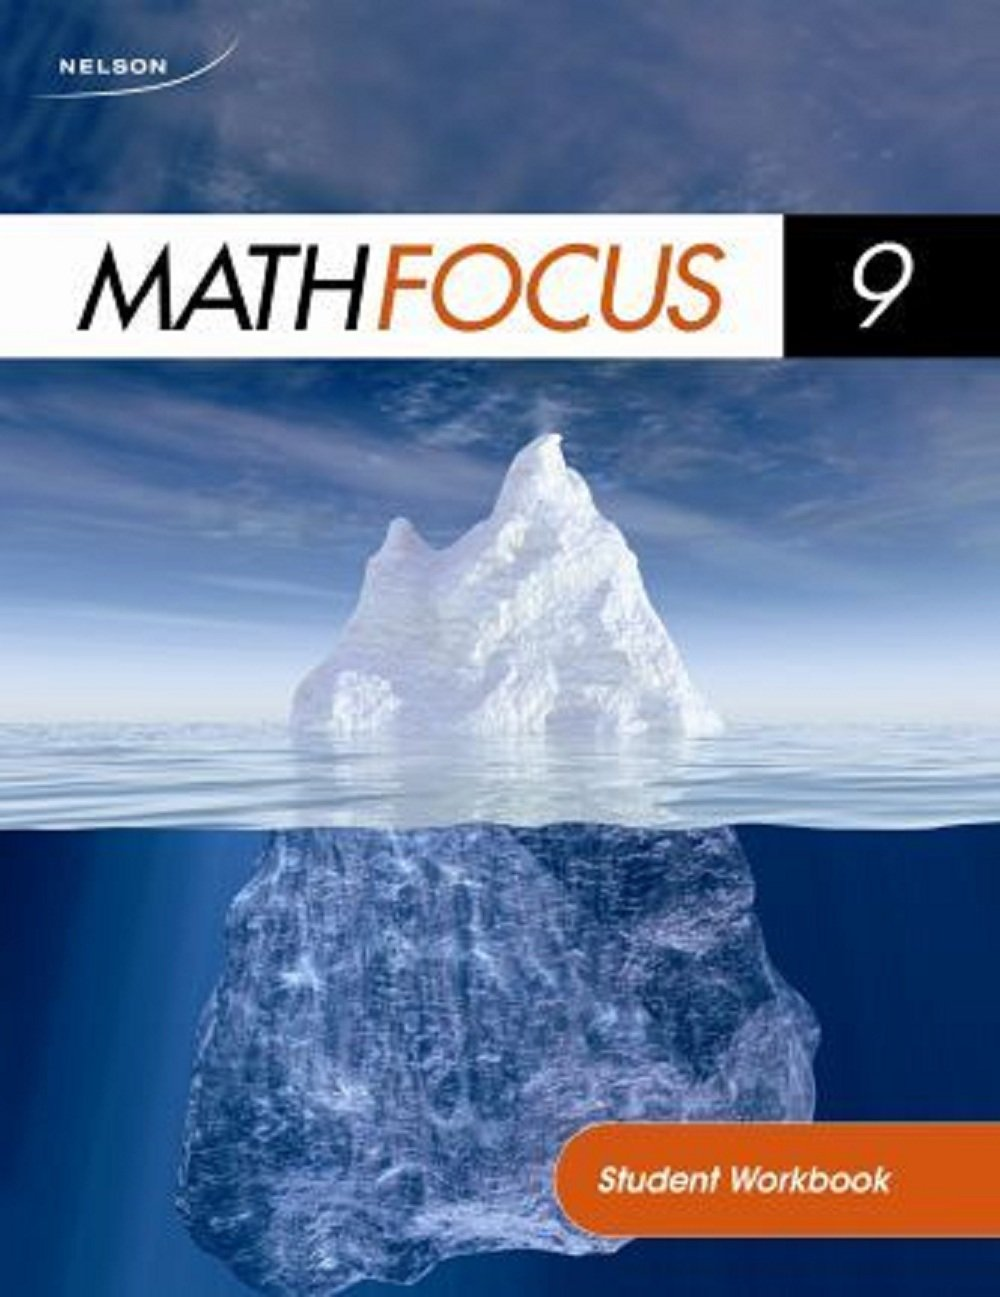 Nelson Math Focus 9 Workbook: Hope et.al: 9780176324780: Amazon.com ...